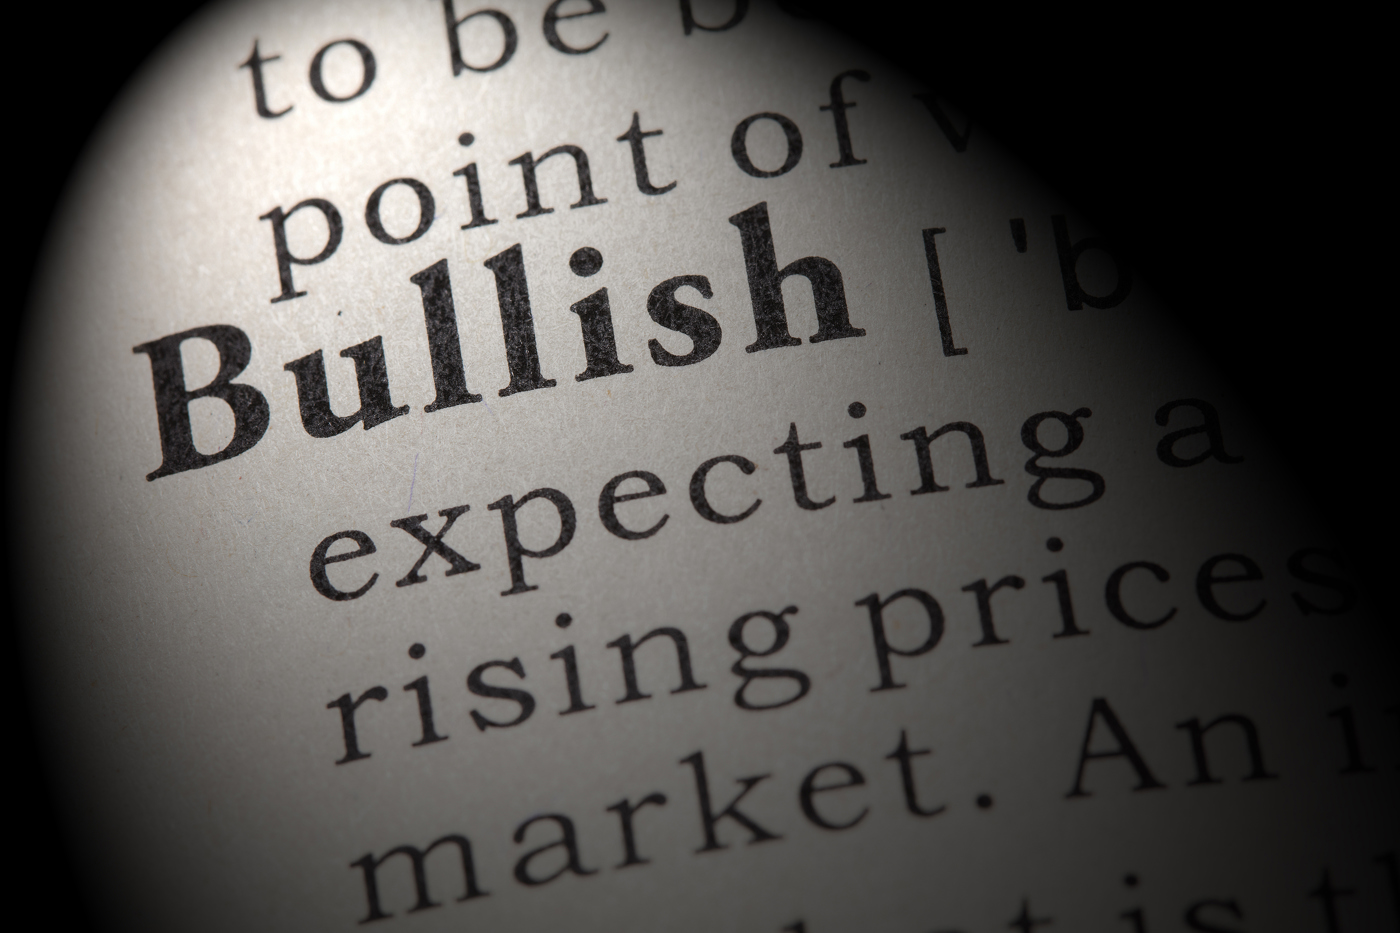 Bullish trader, betting on upside, bullish stock outlook, record highs